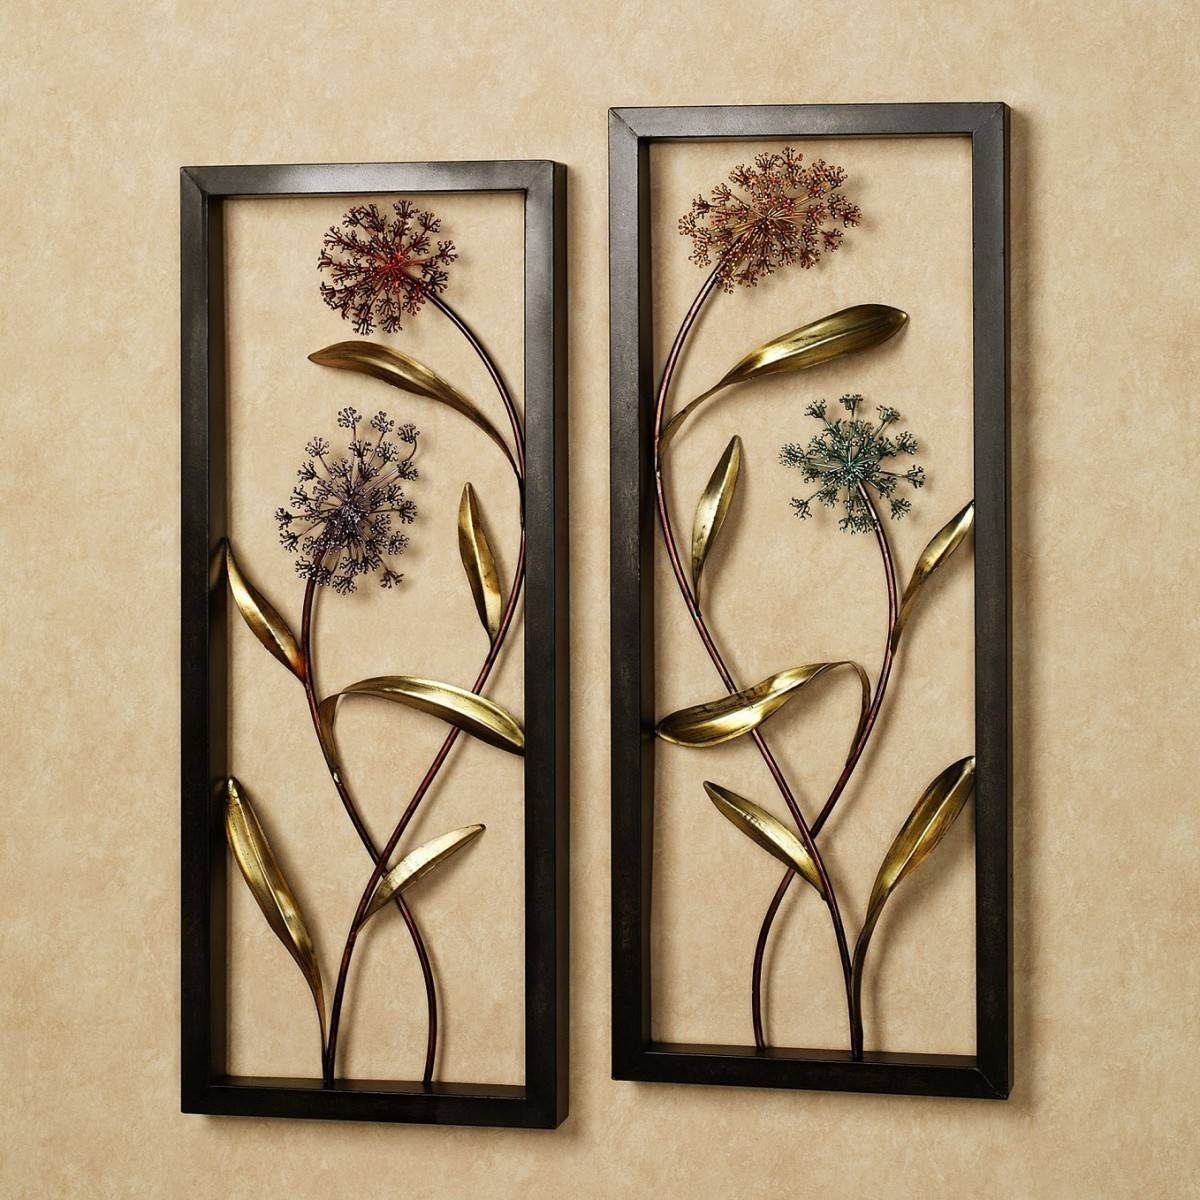 Metal Wall Art Panels For Interior Décor Pertaining To 2017 Outdoor Metal Wall Art Panels (View 12 of 20)